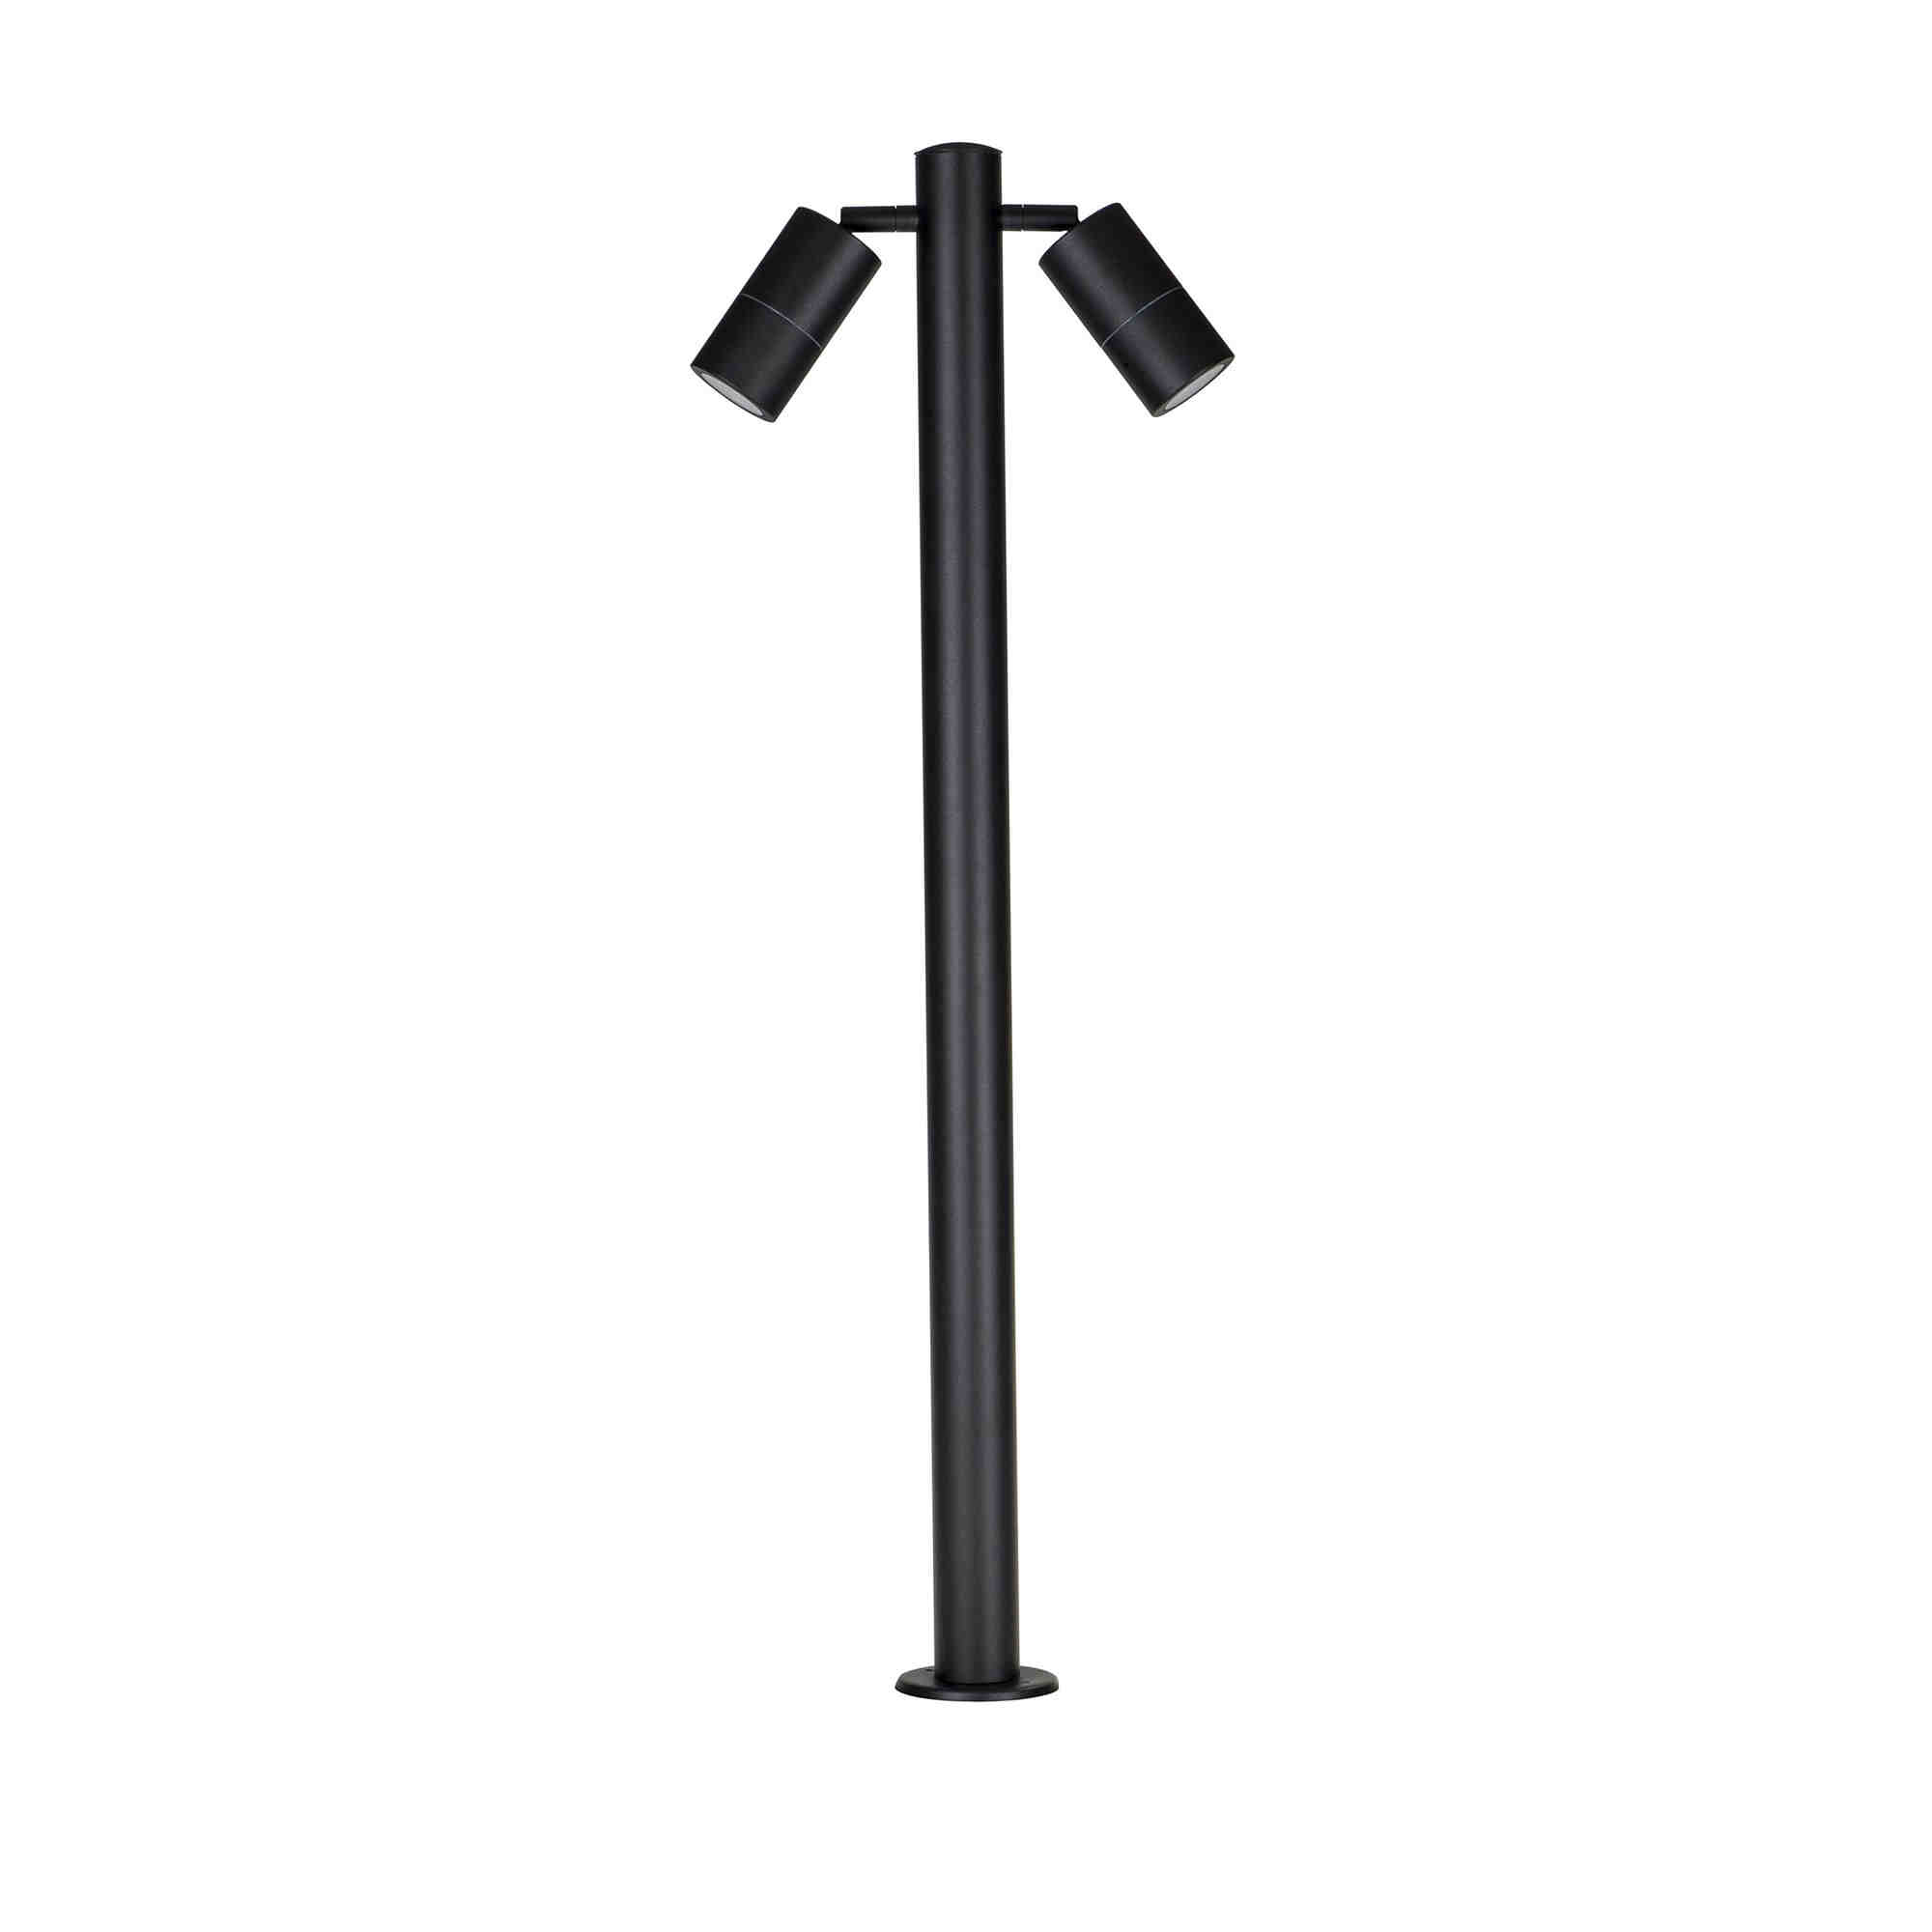 Havit Tivah Bollard Light